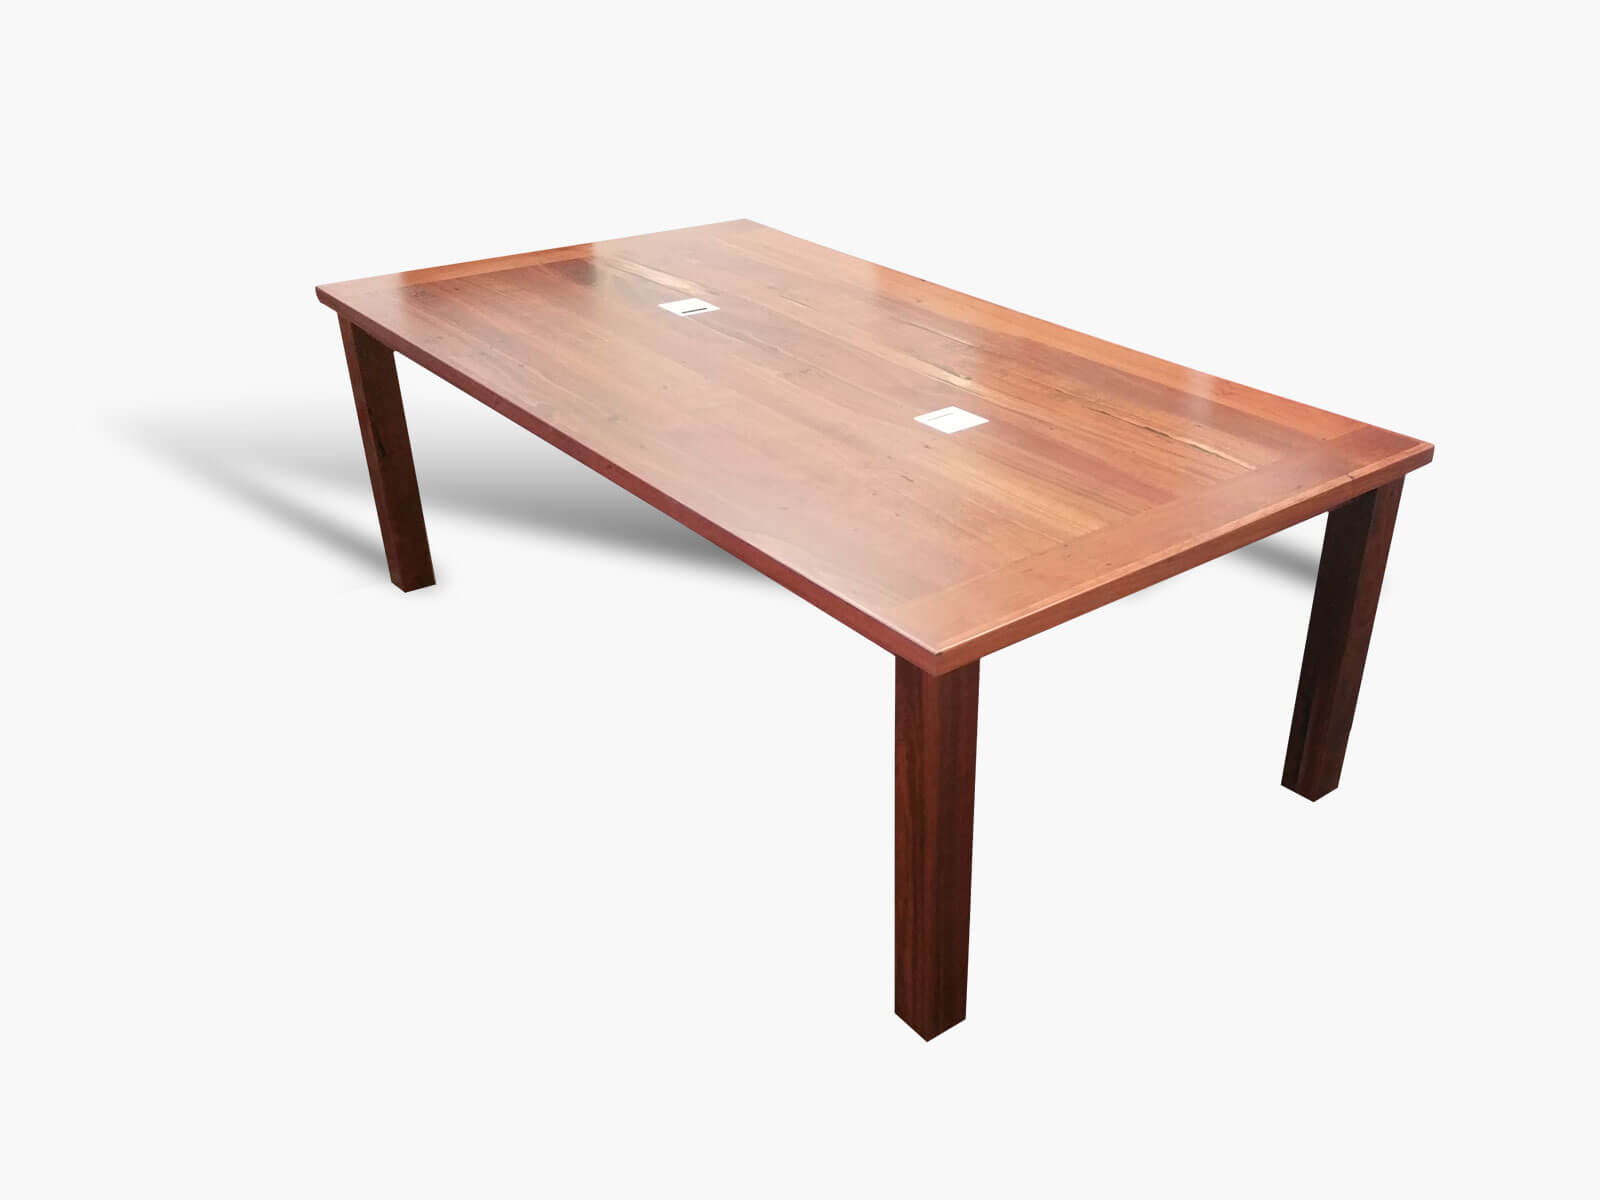 Subiaco-Boardroom-Table Timber Furniture